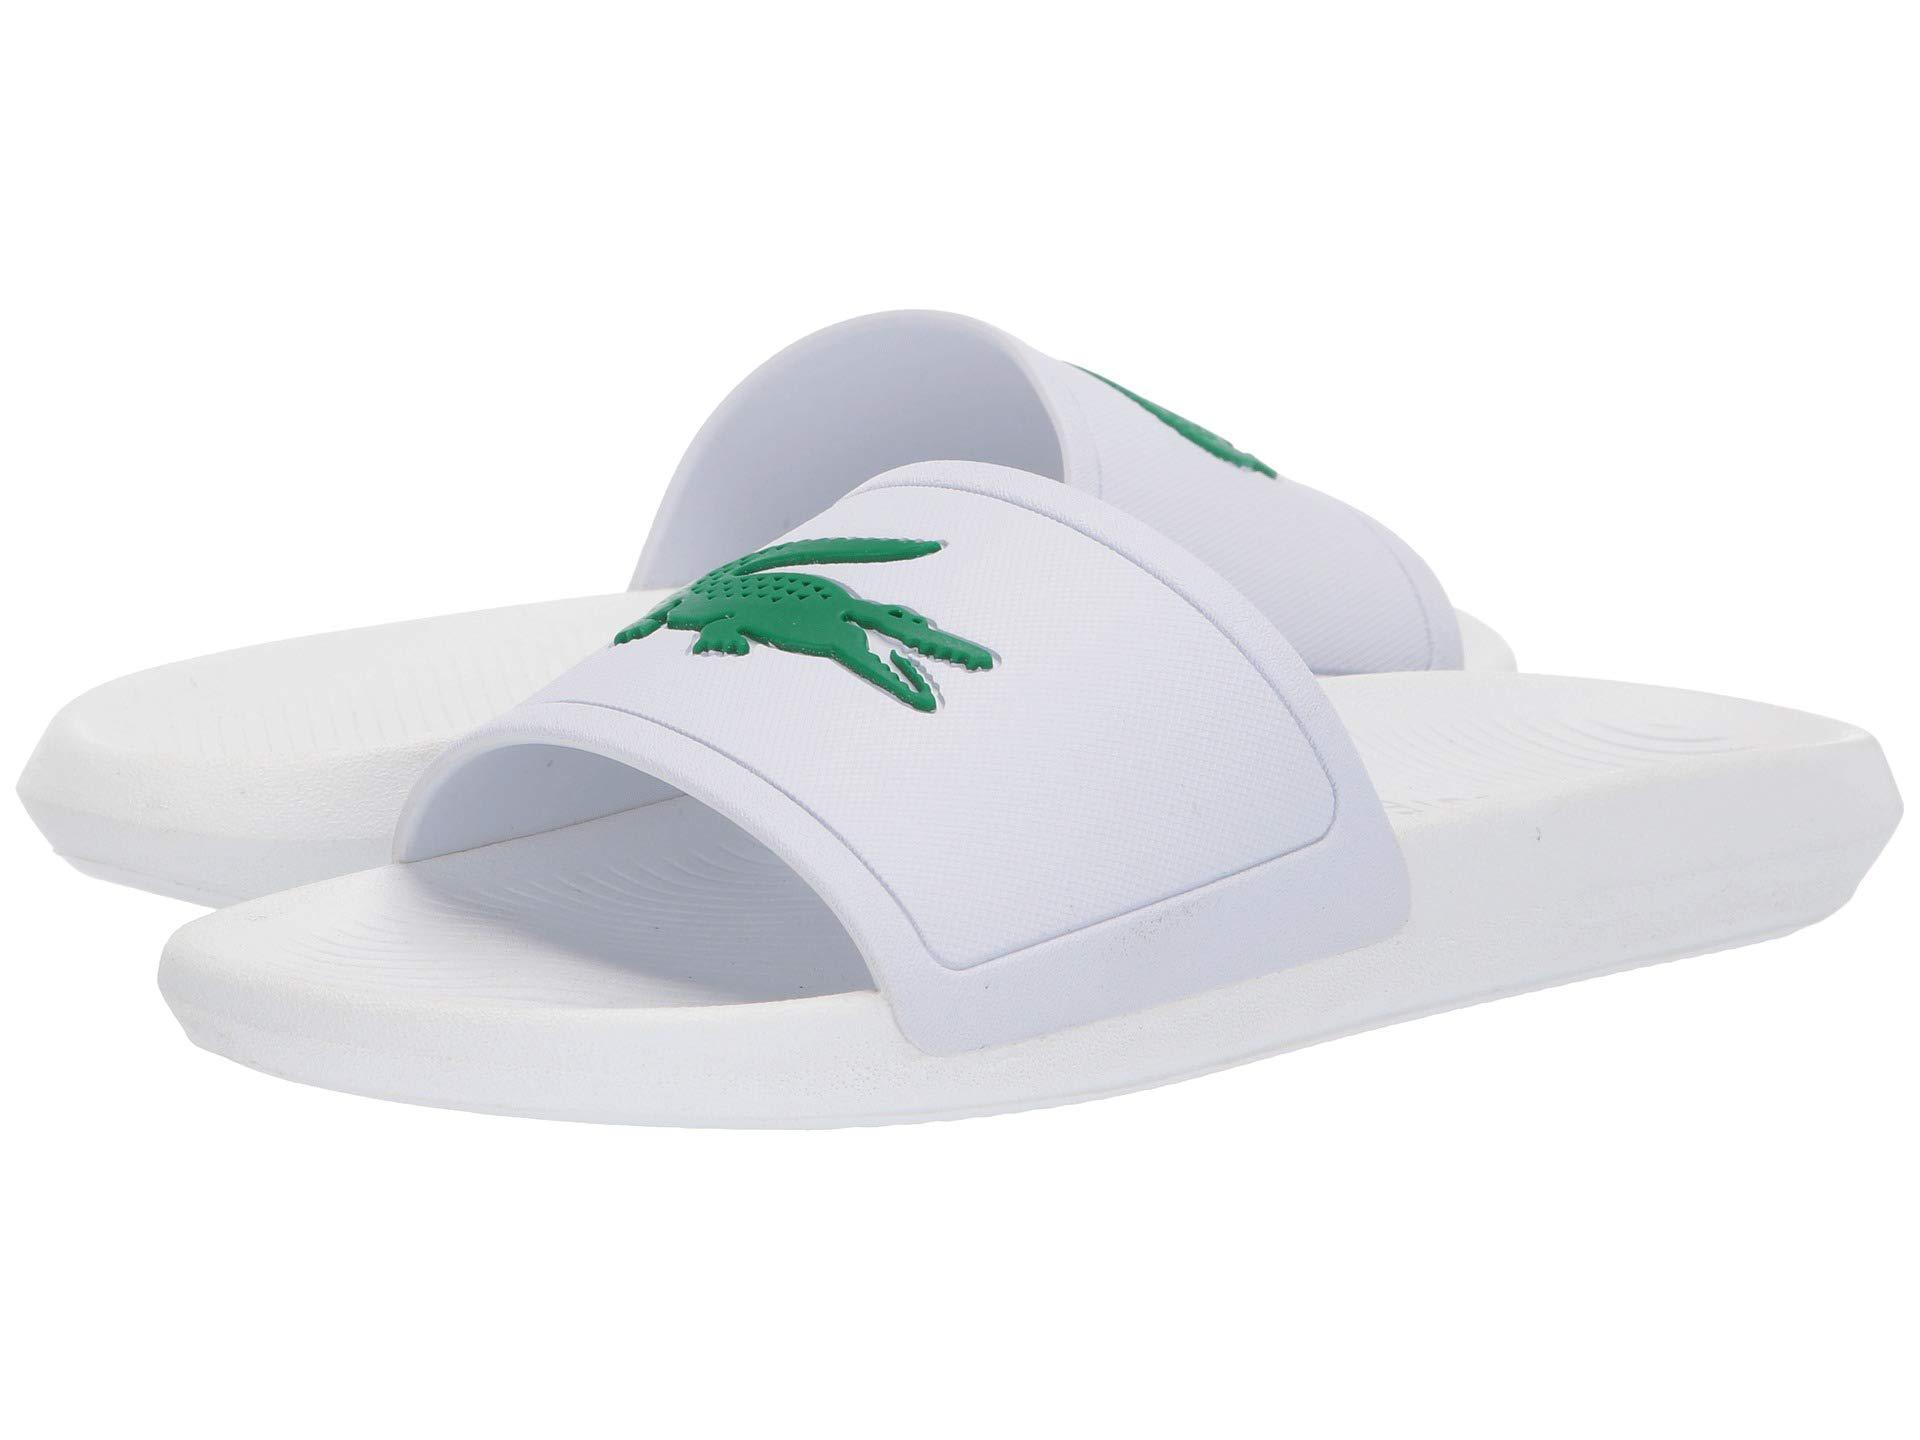 f2aba0cc2c5f Lyst - Lacoste Croco Slide 119 1 (white green) Men s Shoes in White ...